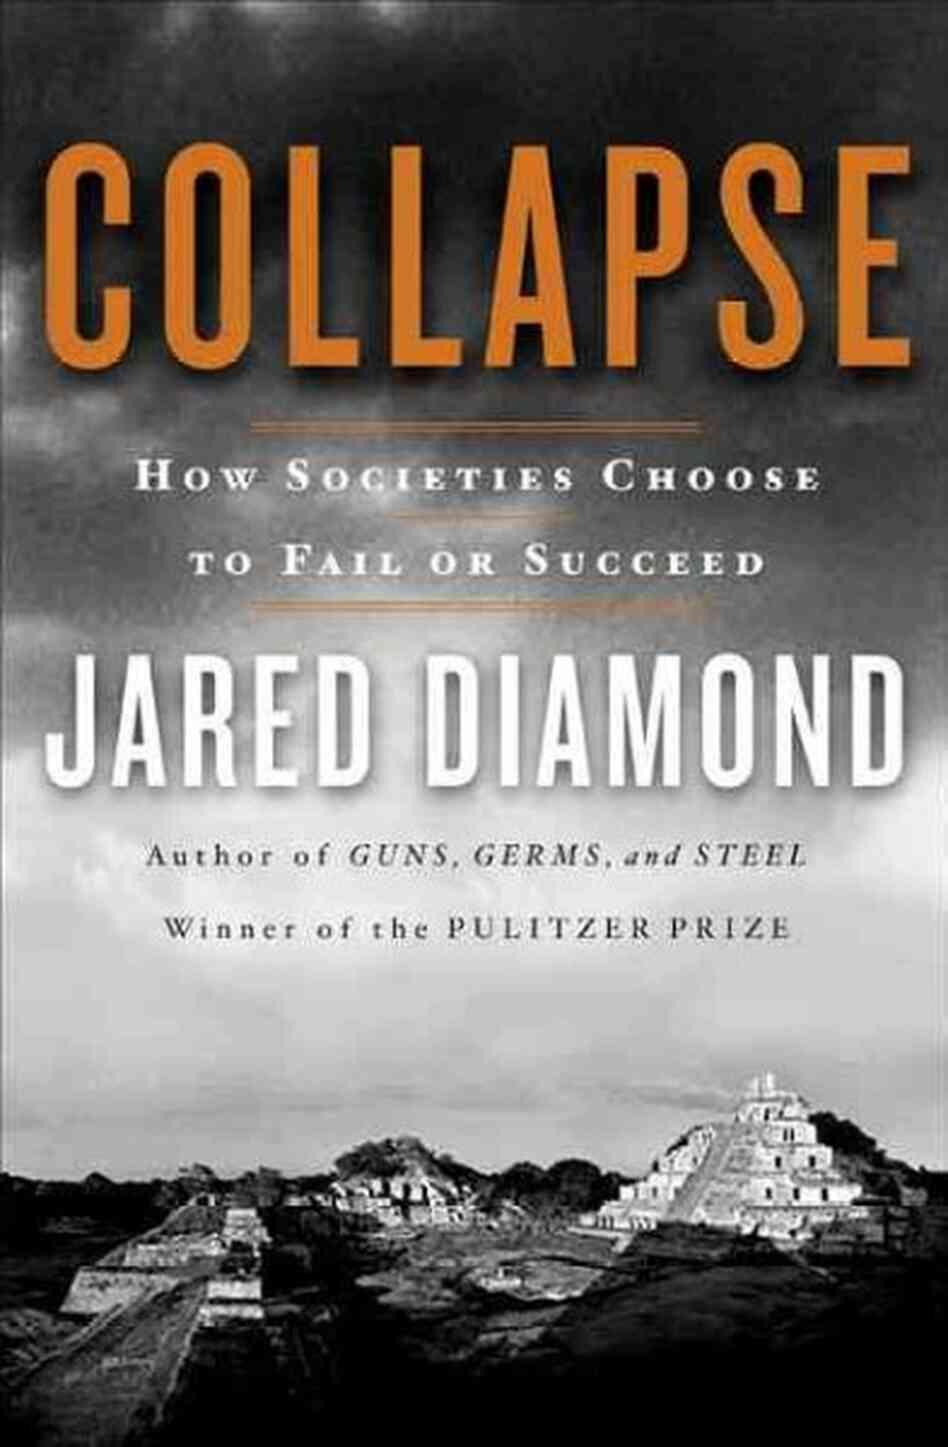 jared diamonds thesis in collapse The myth of easter island's ecocide best popularised by jared diamond in his 2005 book 'collapse' diamond's thesis is that the island's original.